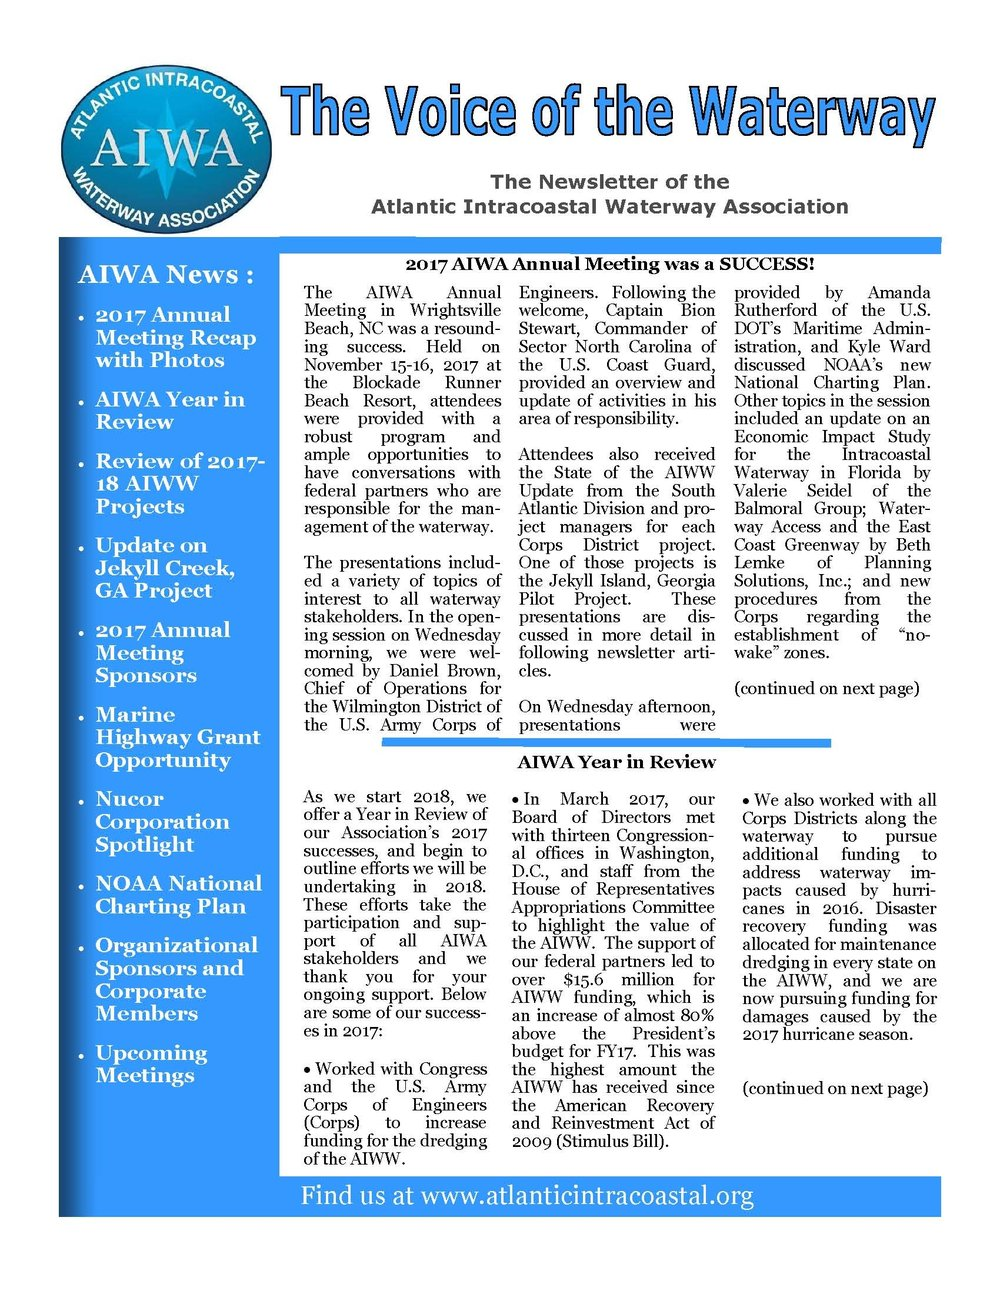 AIWA Newsletter January 2018.jpg